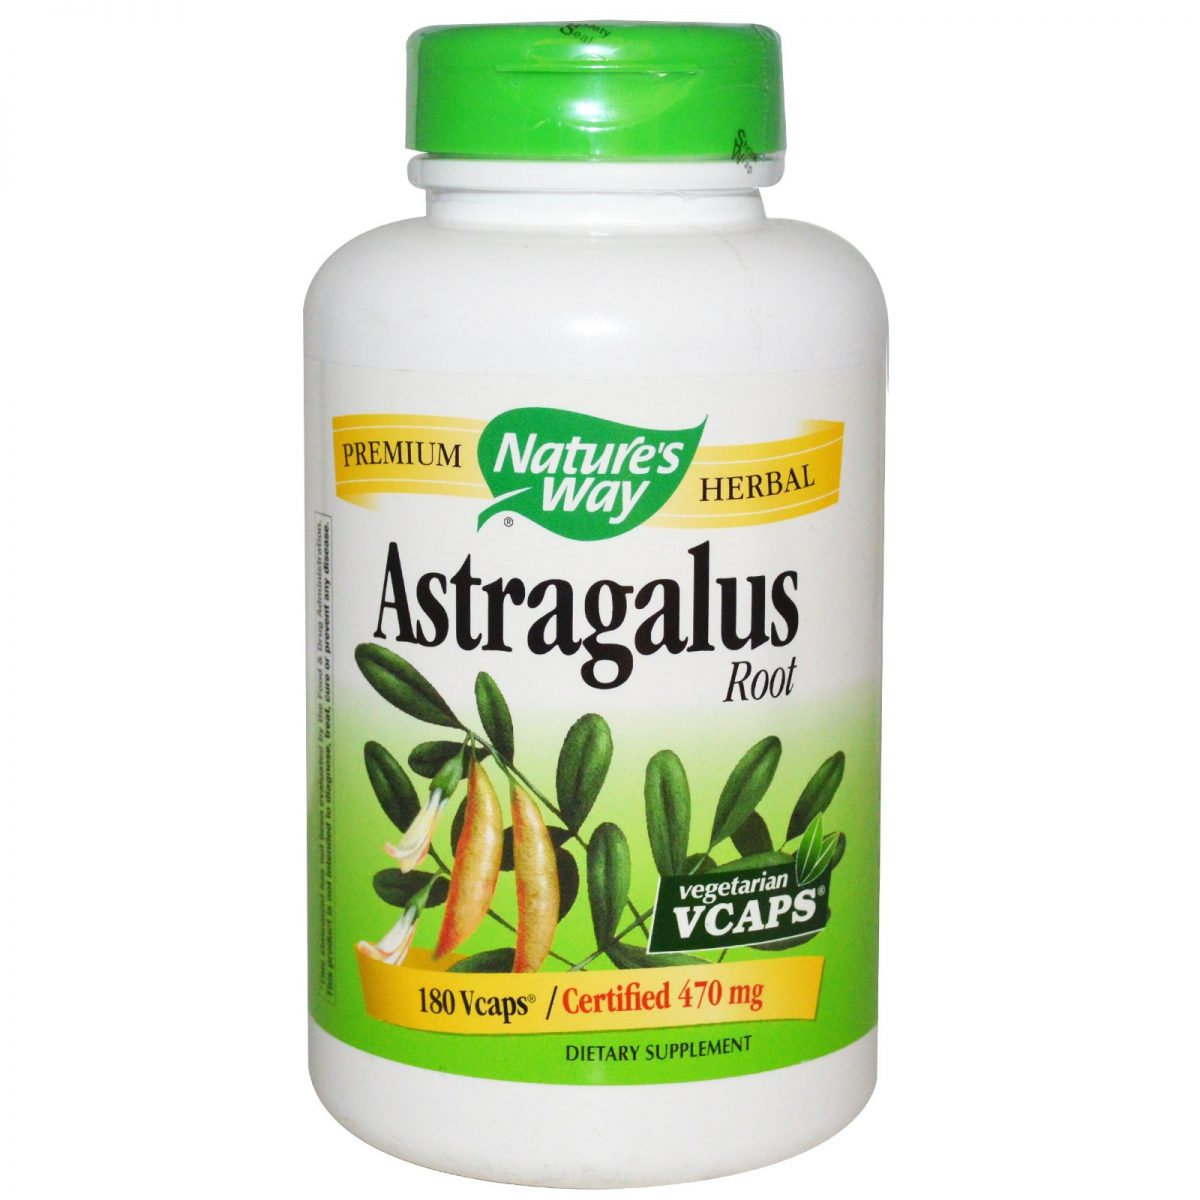 Nature's Way | Astragalus Root / 180 Vcaps® -30526